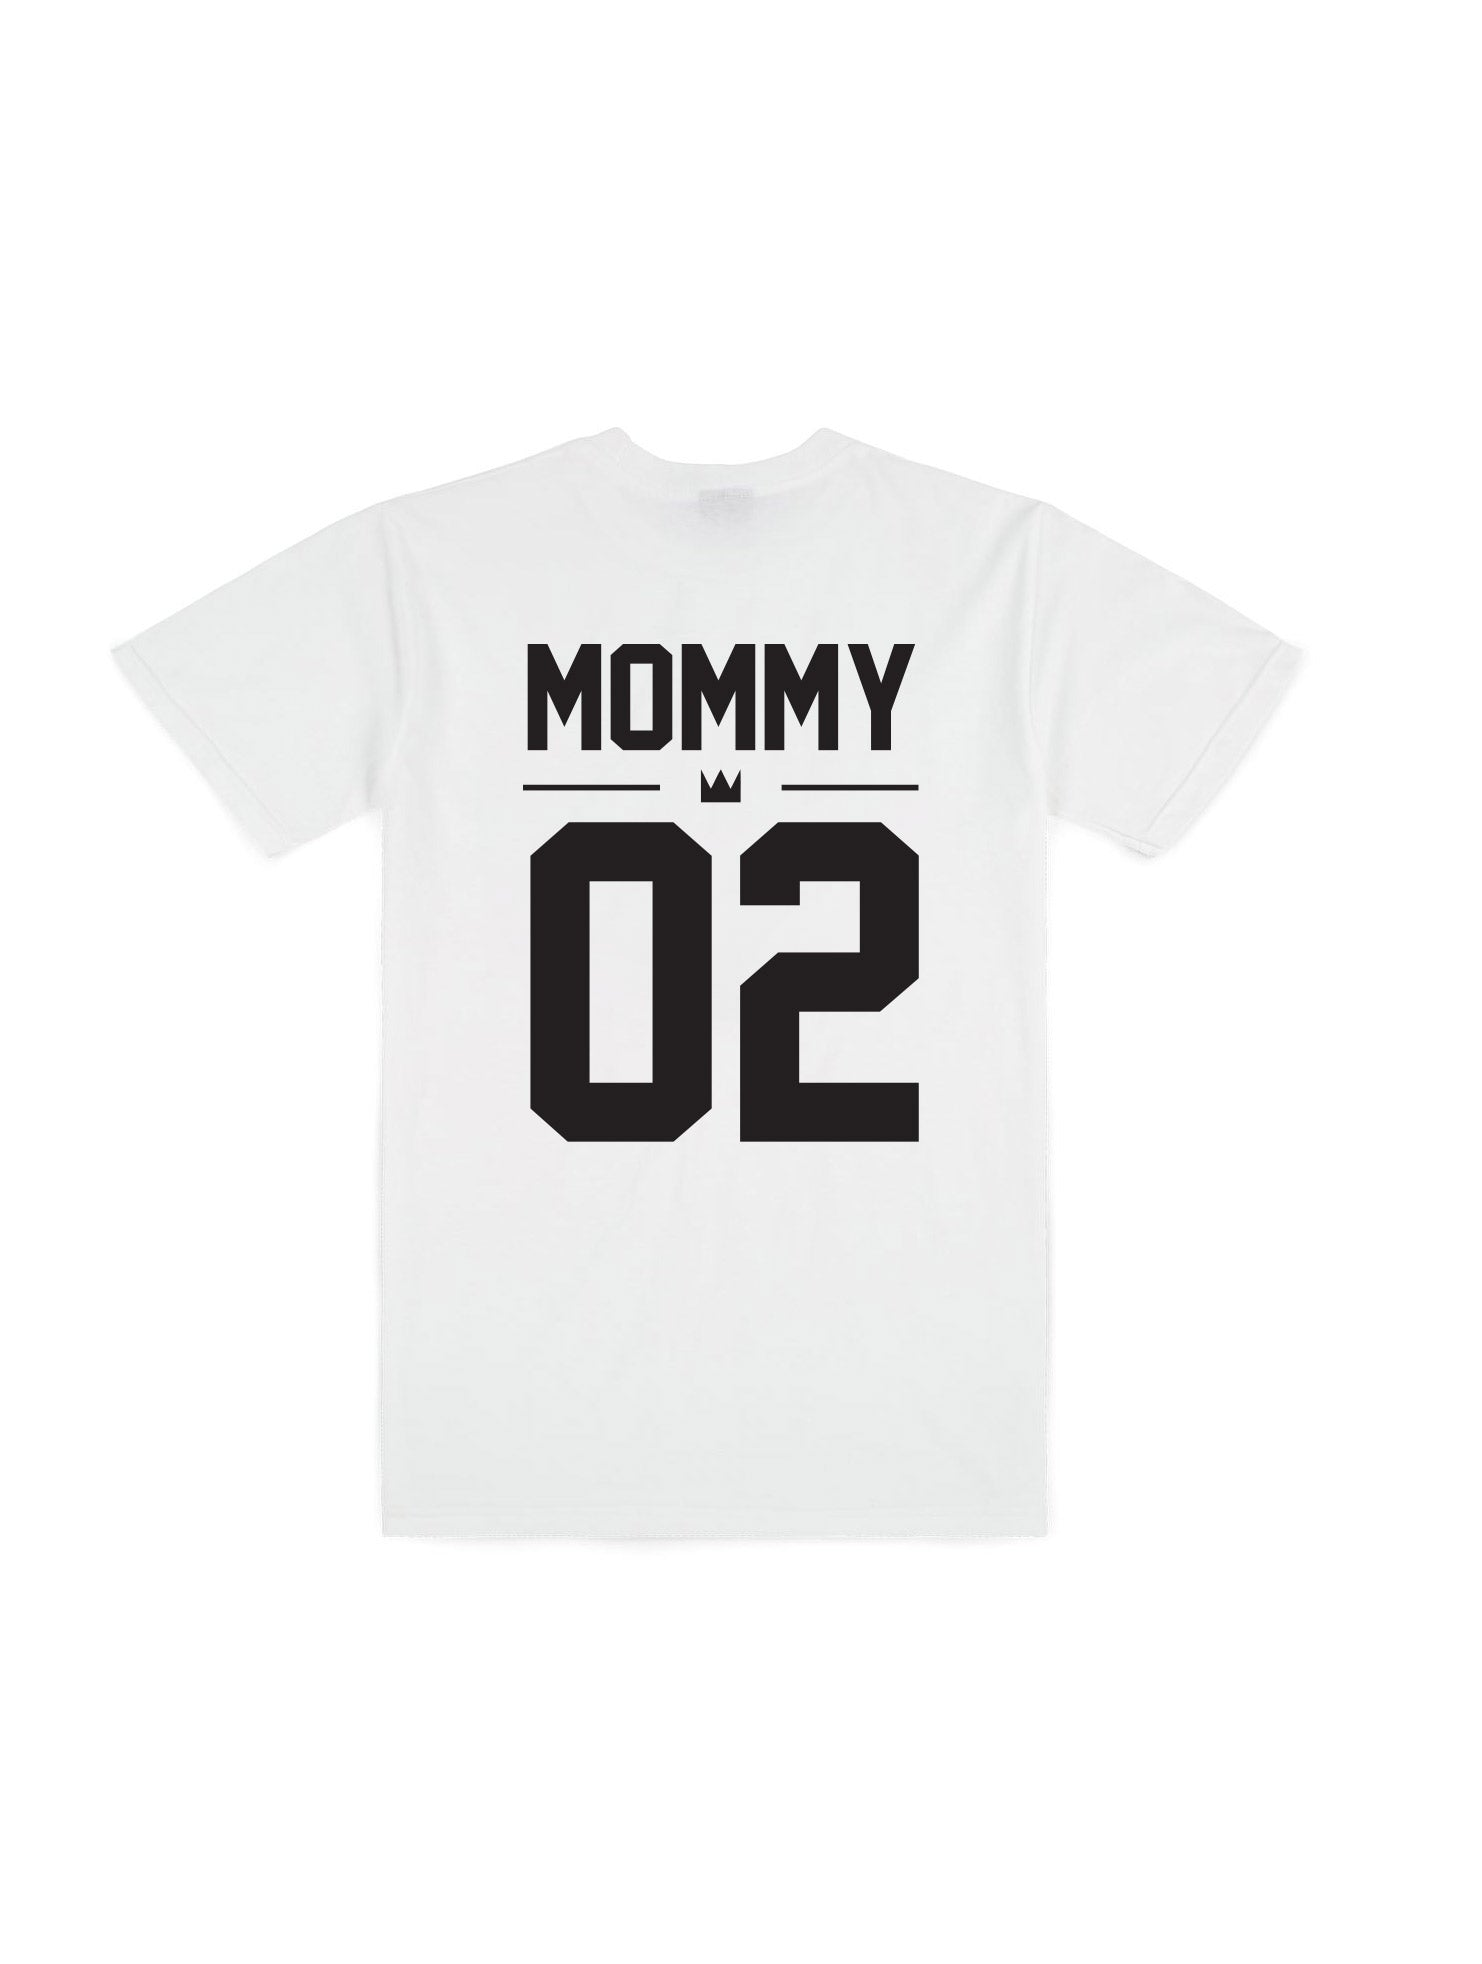 MOMMY WHITE T-SHIRT